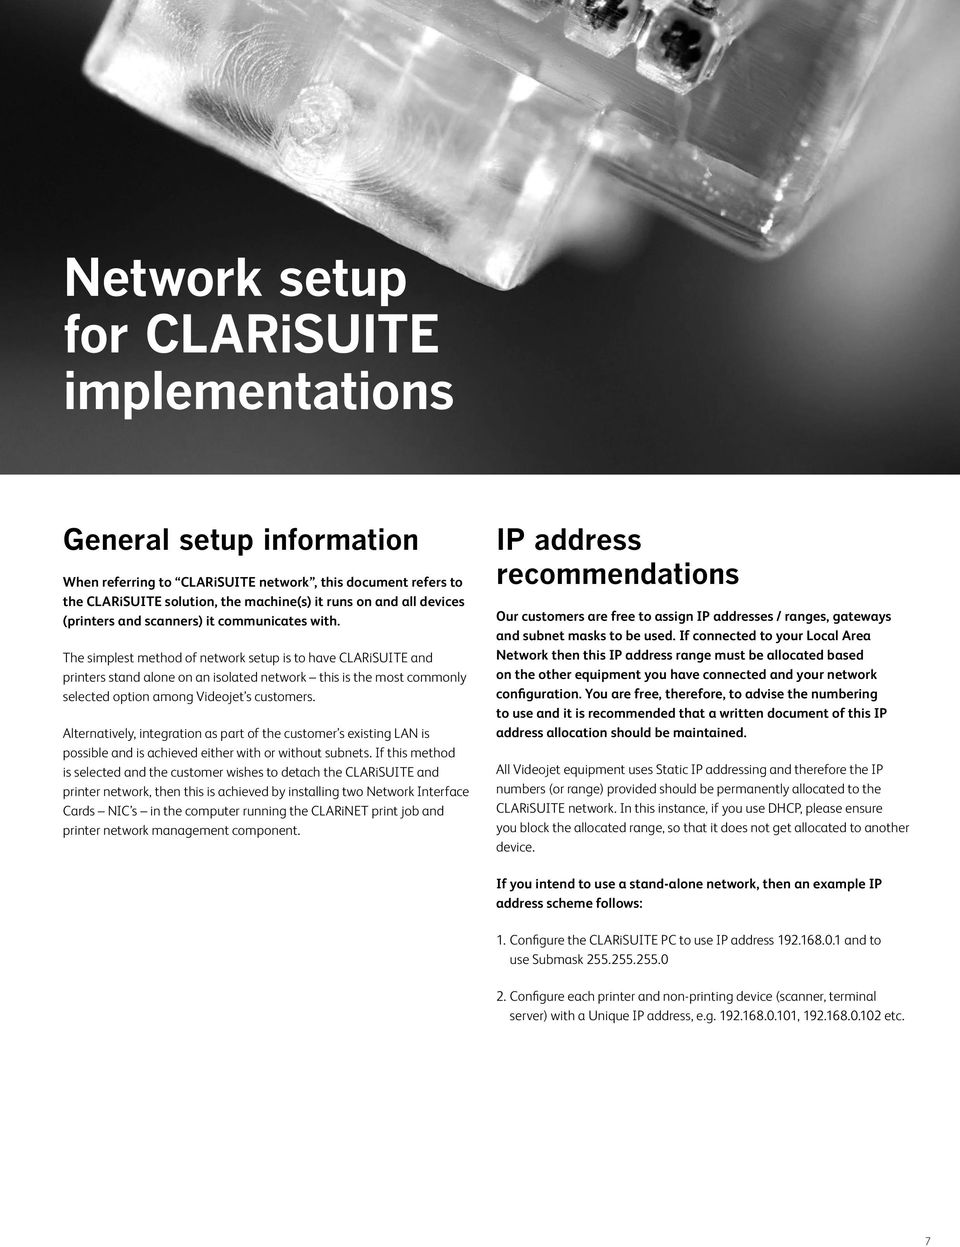 The simplest method of network setup is to have CLARiSUITE and printers stand alone on an isolated network this is the most commonly selected option among Videojet s customers.